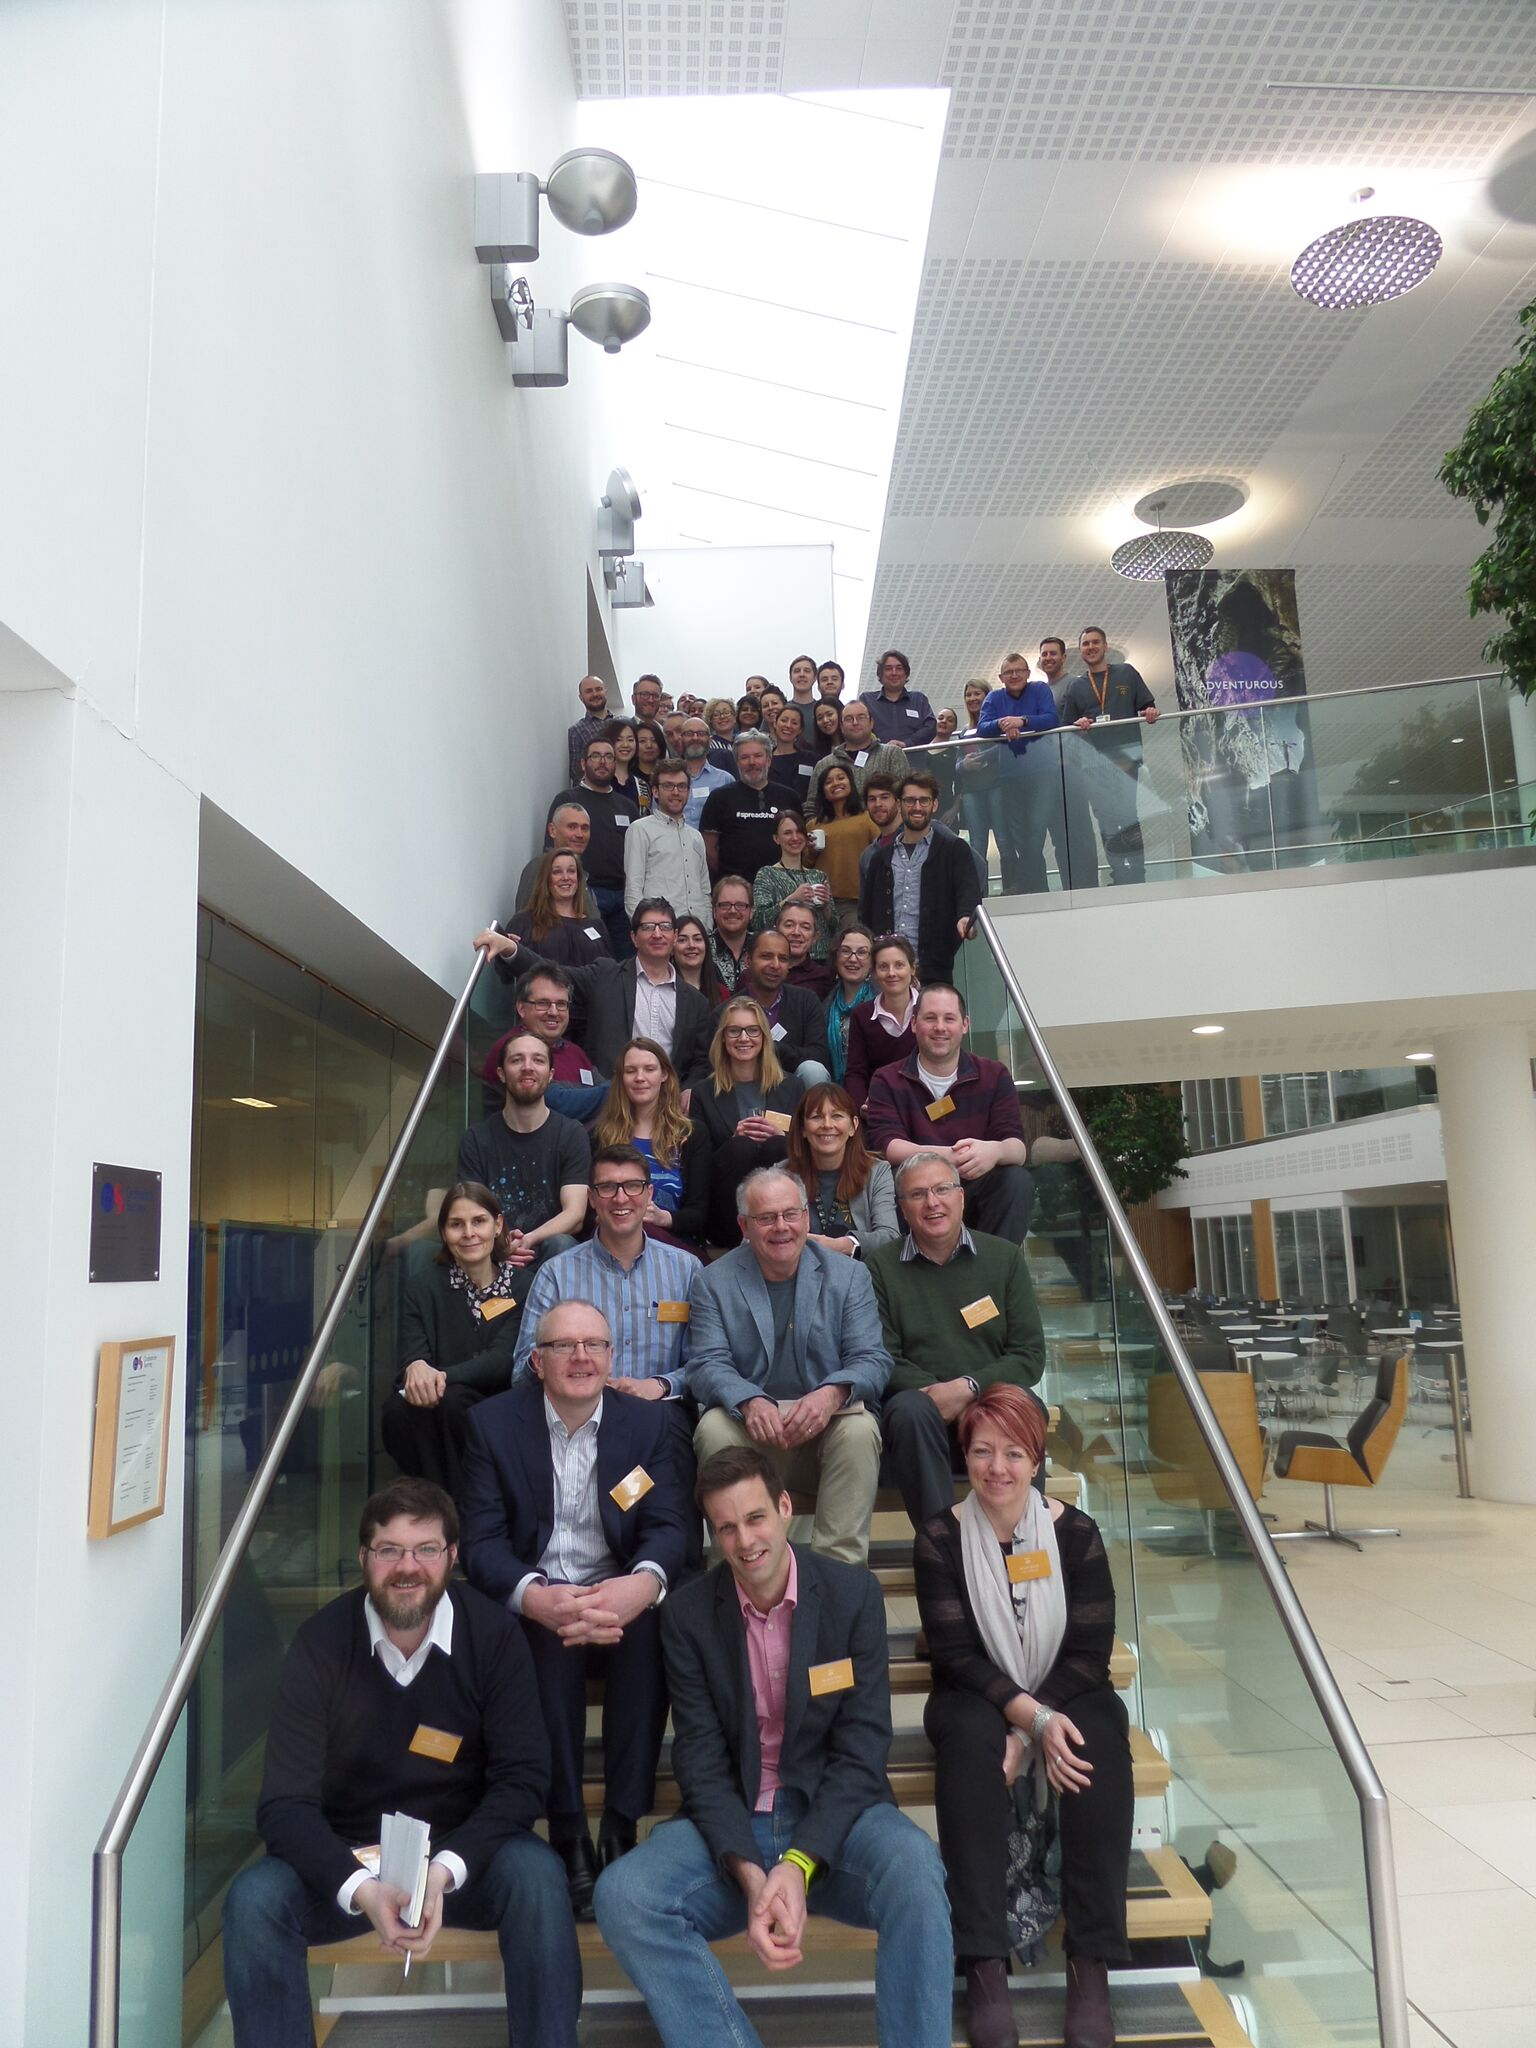 Geovation Camp team sitting on the stairs at Ordnance Survey HQ